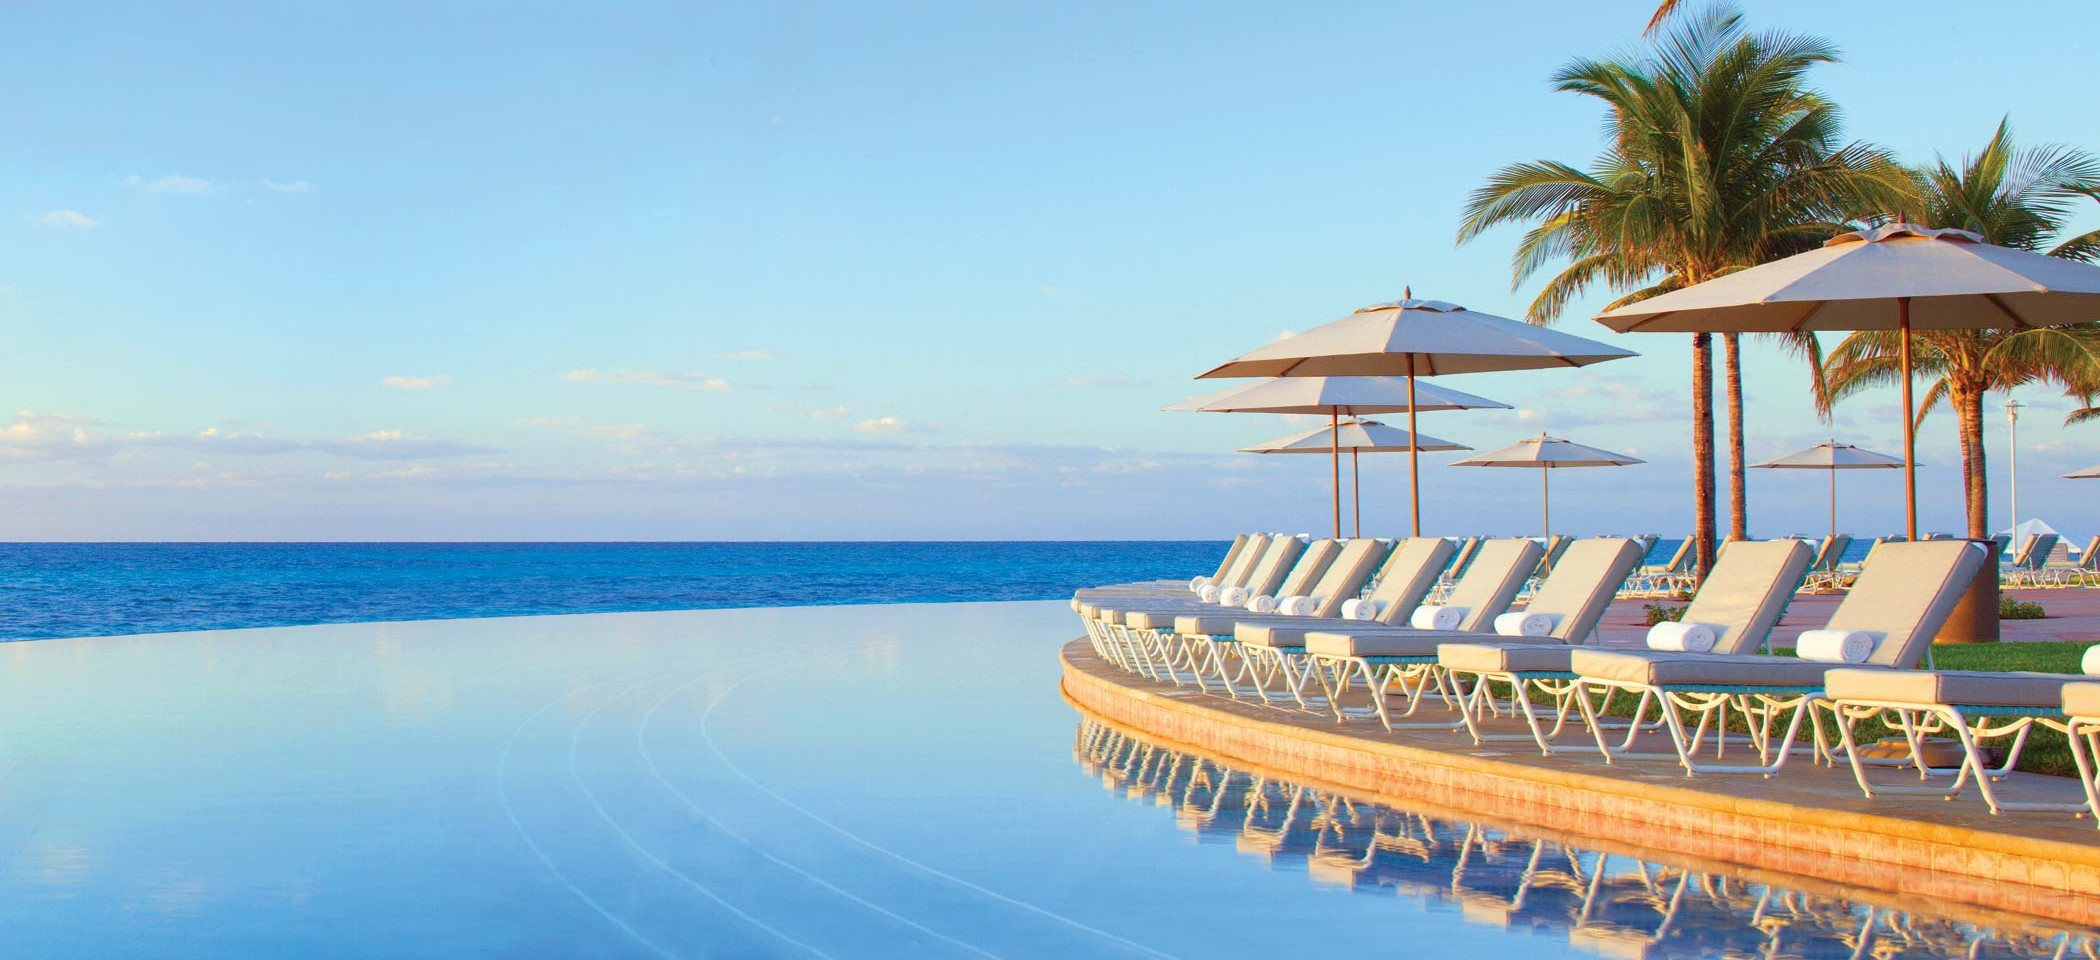 Grand-lucayan-Infinity-Pool-e1393438934833.jpg